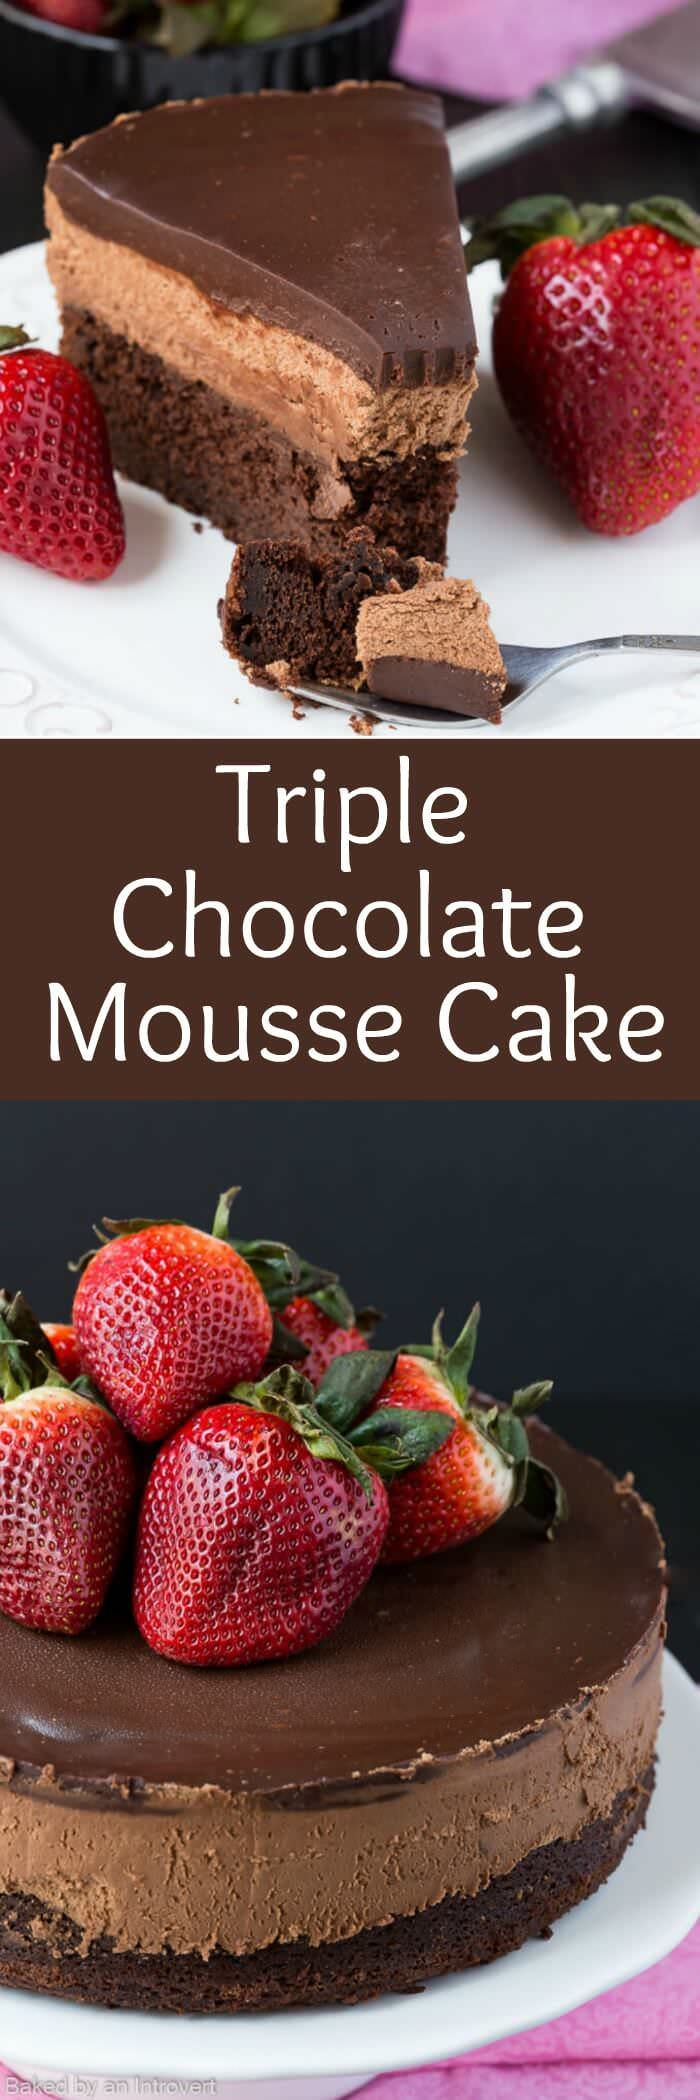 Triple chocolate Mousse Cake is the perfect light dessert recipe. It's made with a chocolate cake base, cool creamy mousse filling and topped with rich dark chocolate ganache. (Dark Chocolate Mousse)